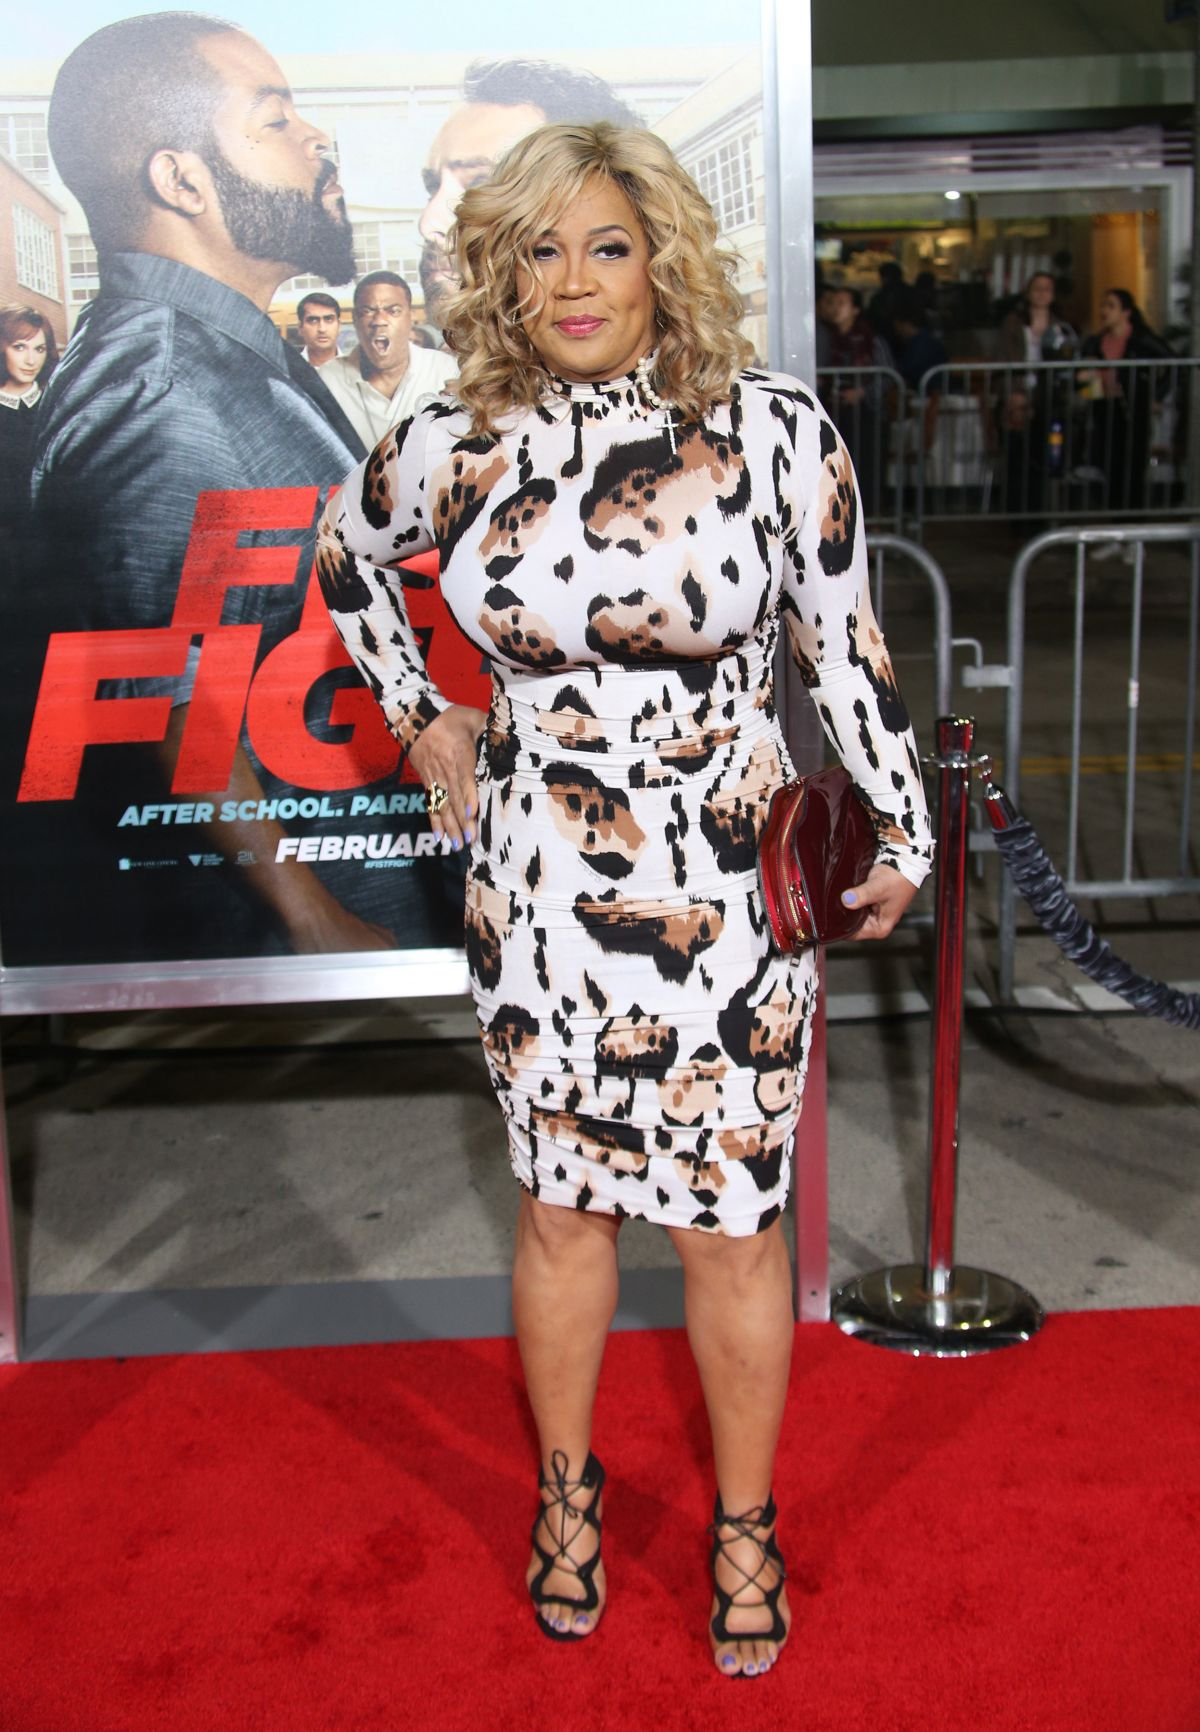 Kym Whitley Kym Whitley new images